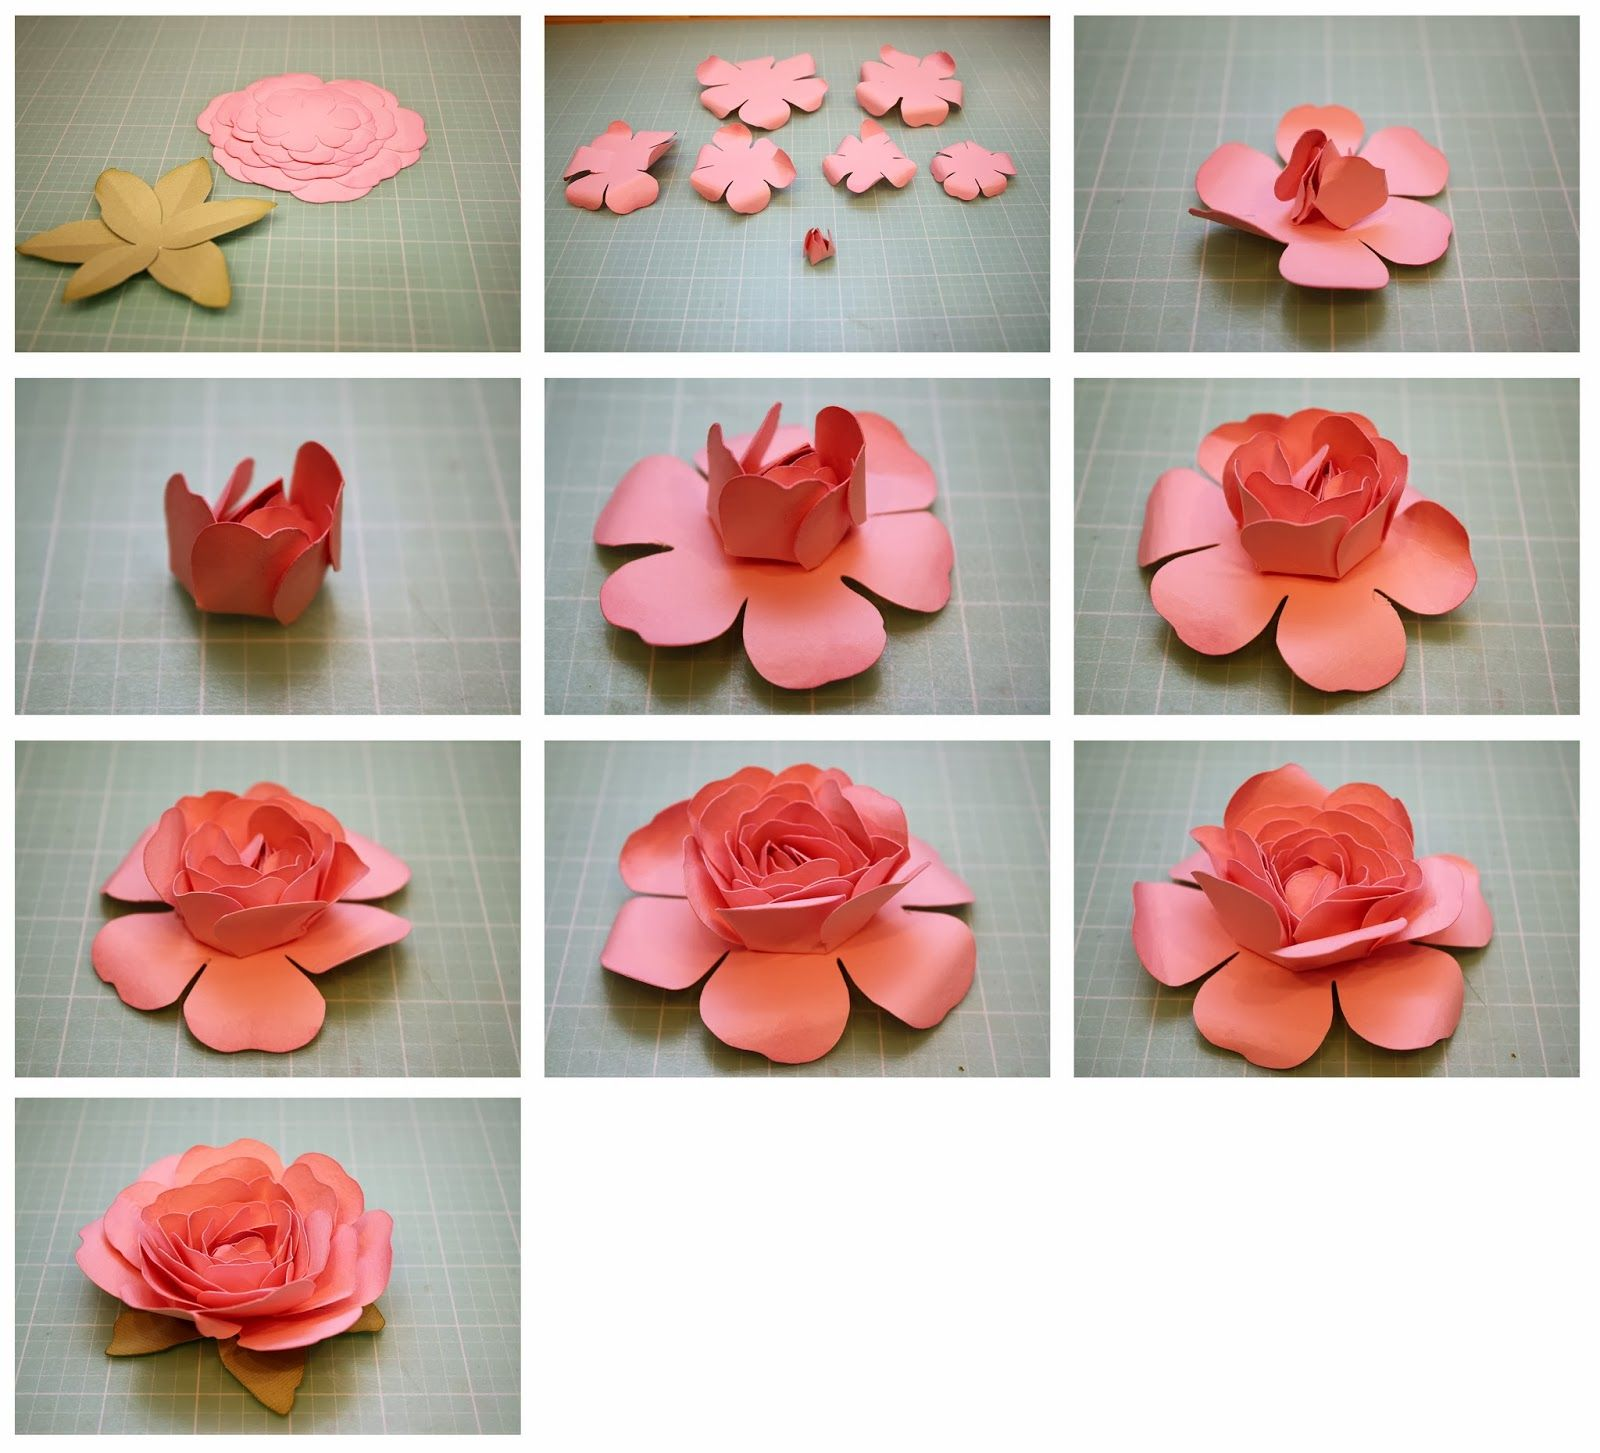 Bits Of Paper Rolled Rose And Easy To Assemble Rose 3d Paper